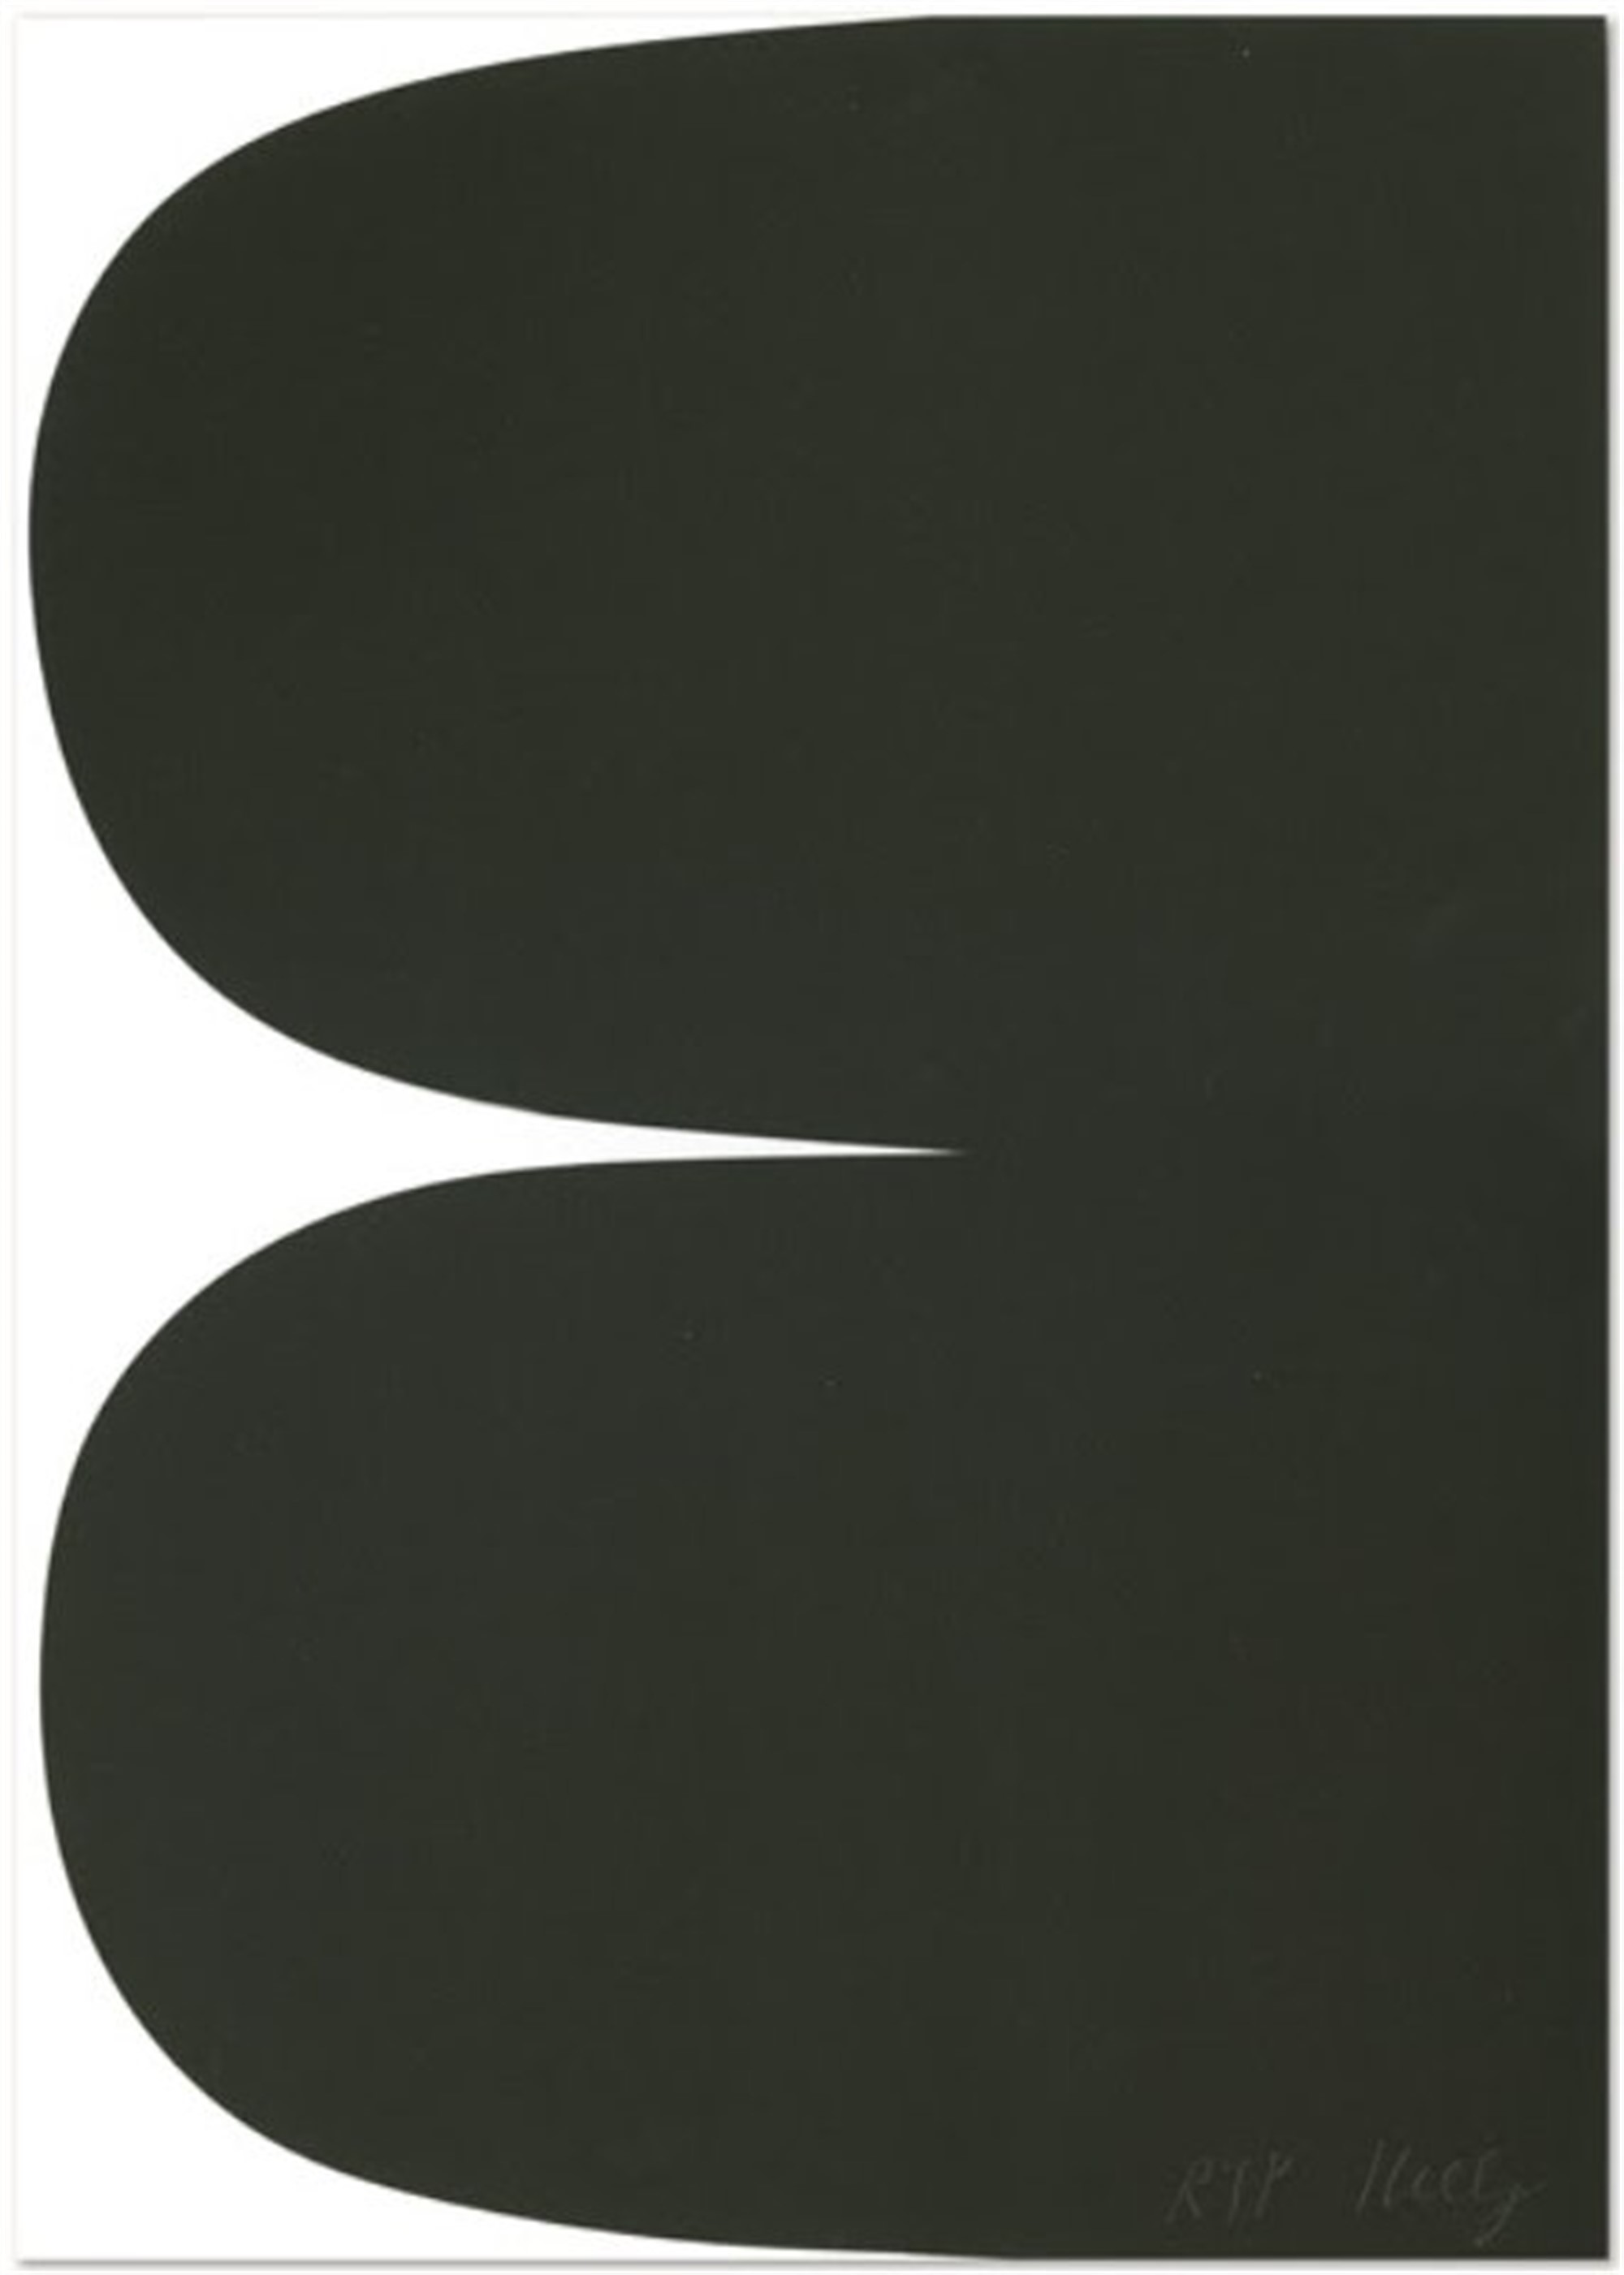 Untitled (for Obama) by Ellsworth Kelly